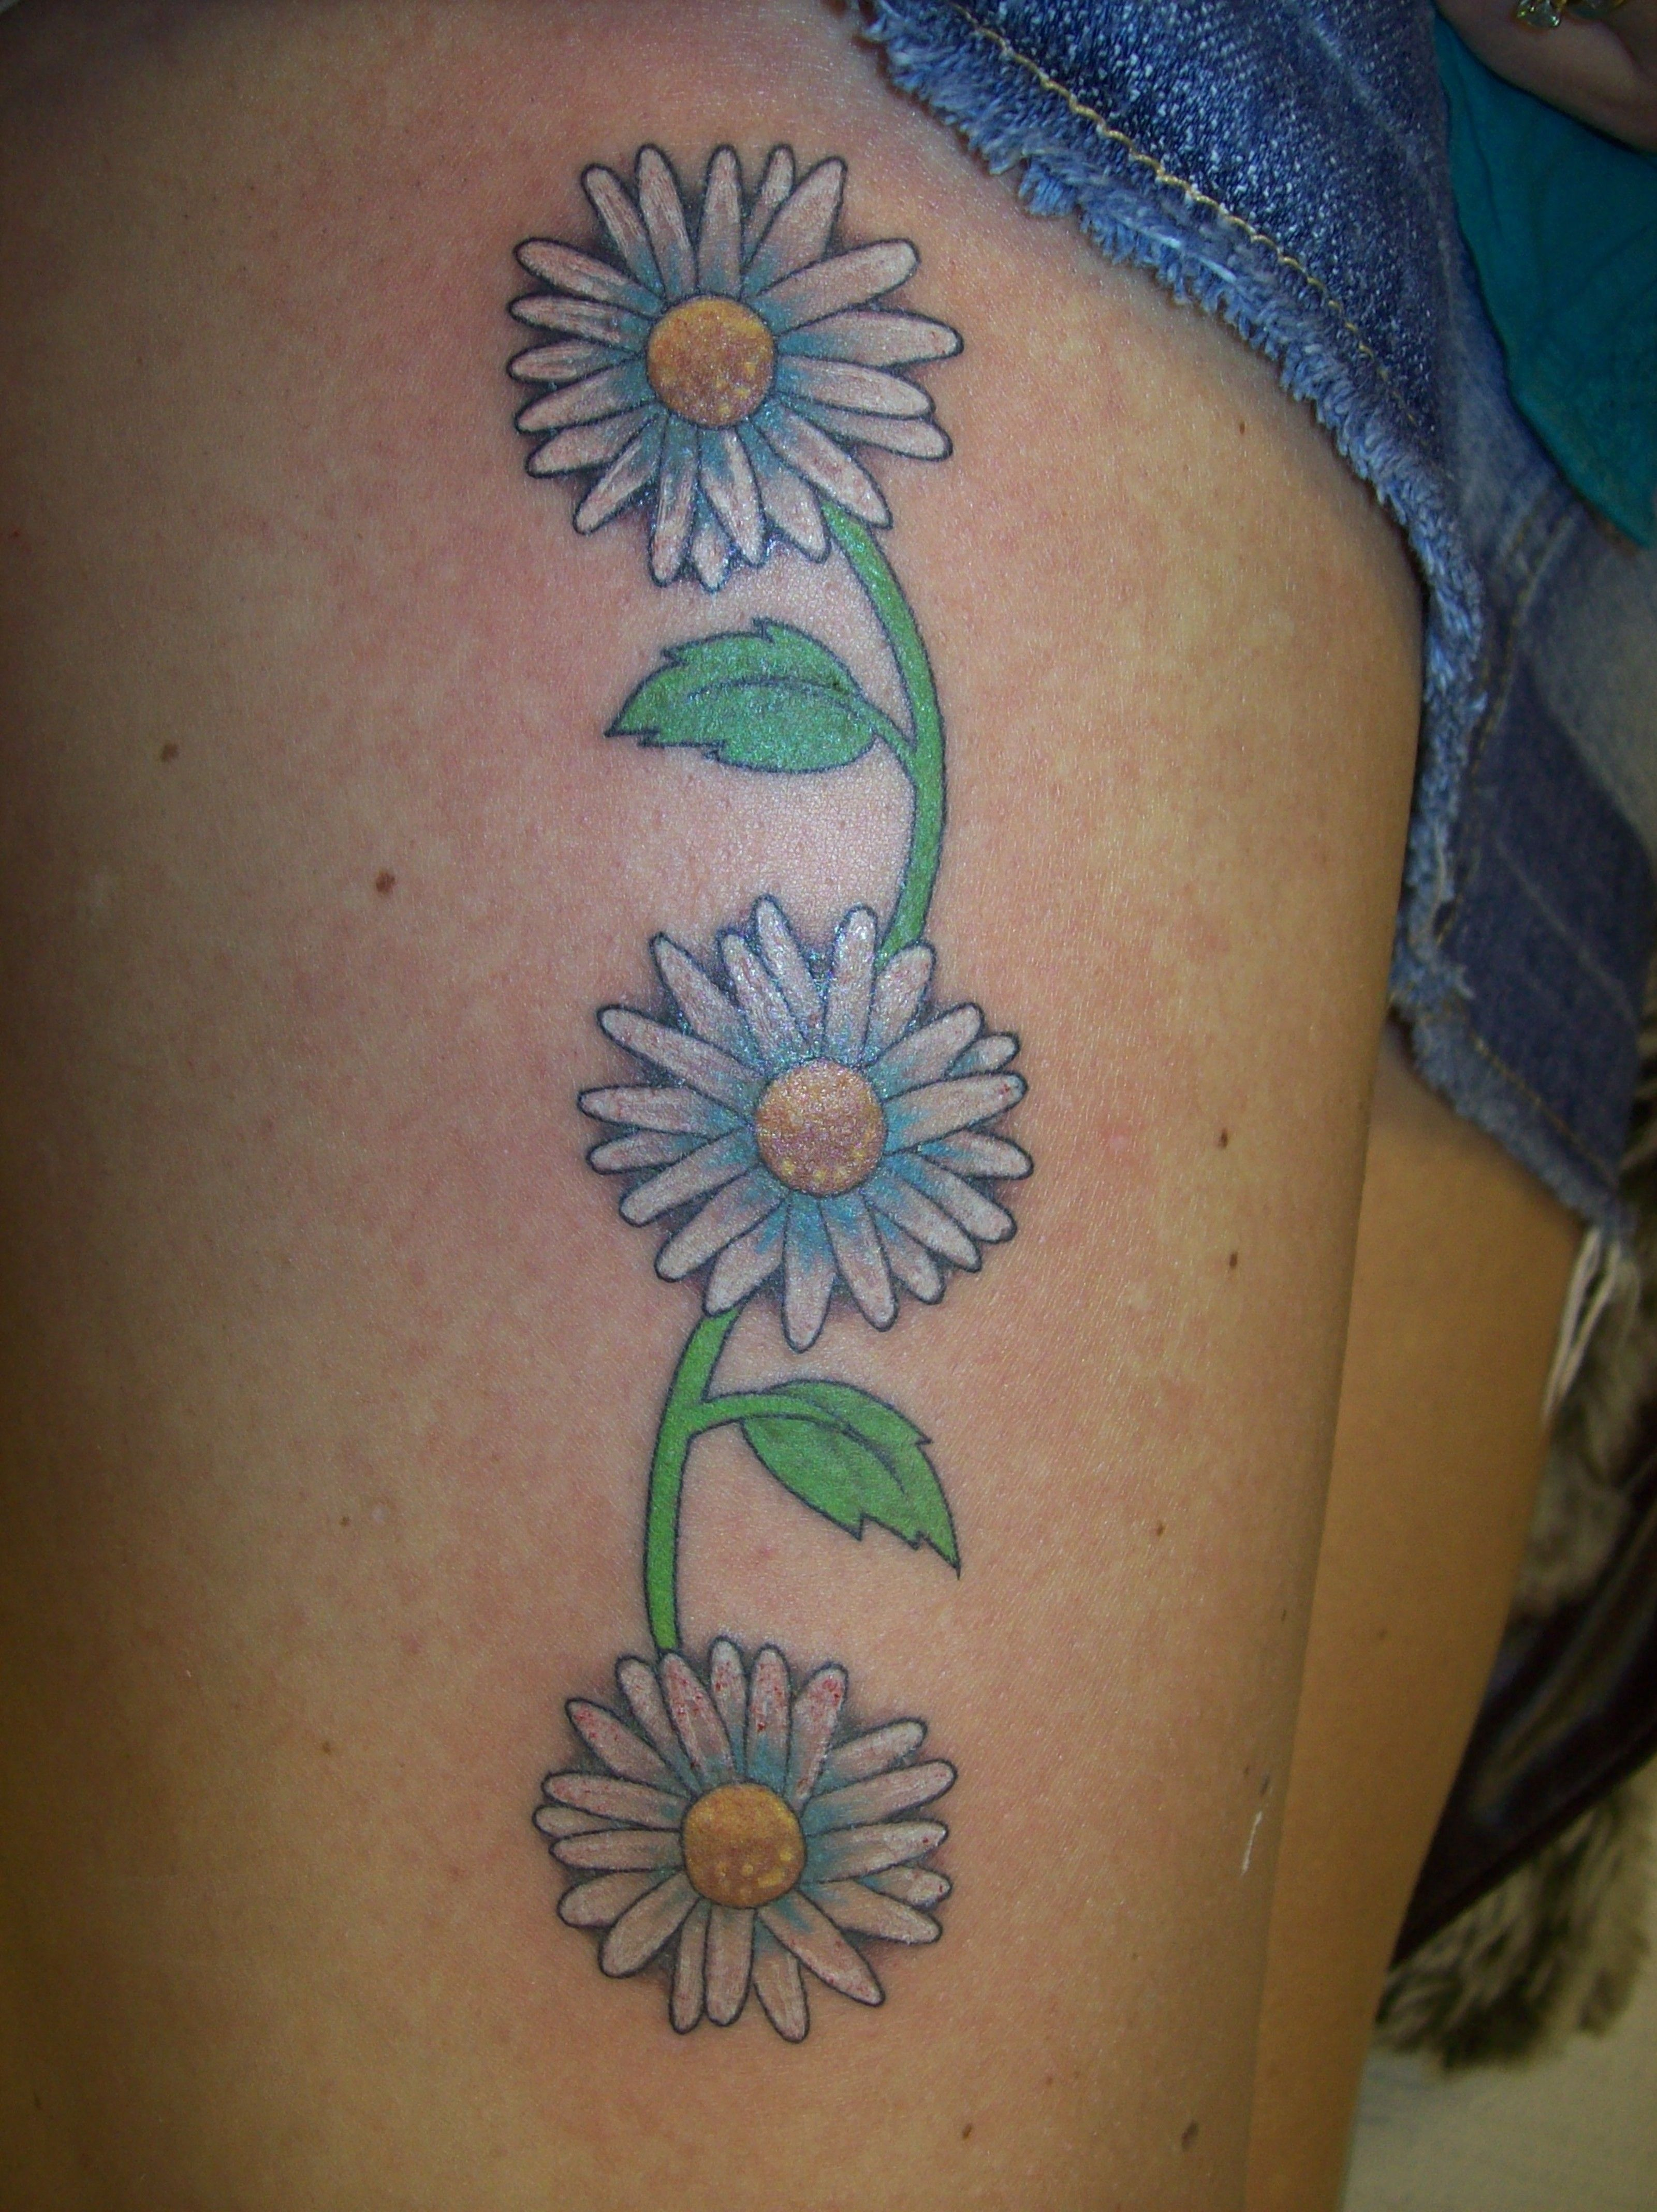 Blue daisy tatw theres an idea tattoos pinterest daisy tattoos and meanings daisy tattoo designs and ideas daisy tattoo pictures izmirmasajfo Image collections